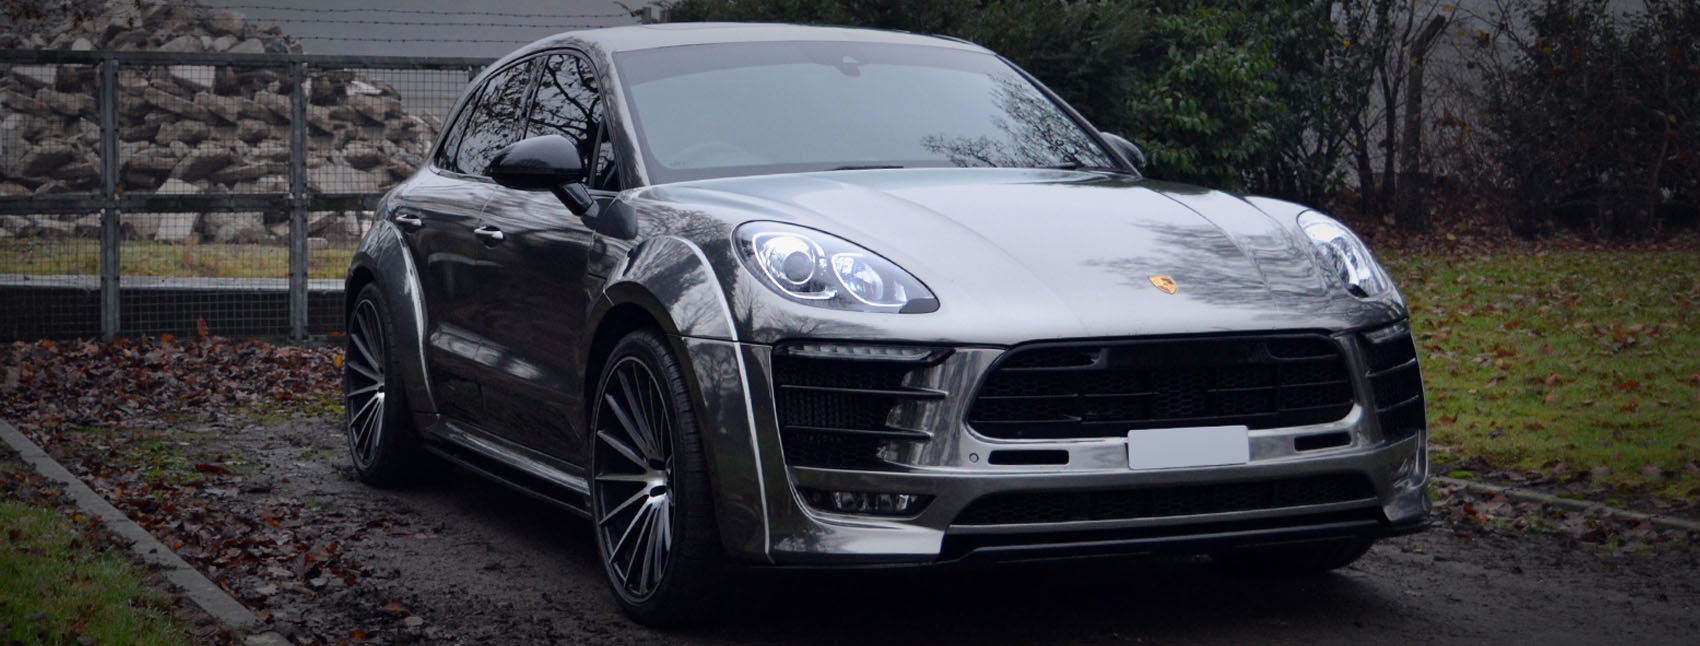 Porsche Macan Chrome Wrap Reforma UK Banner